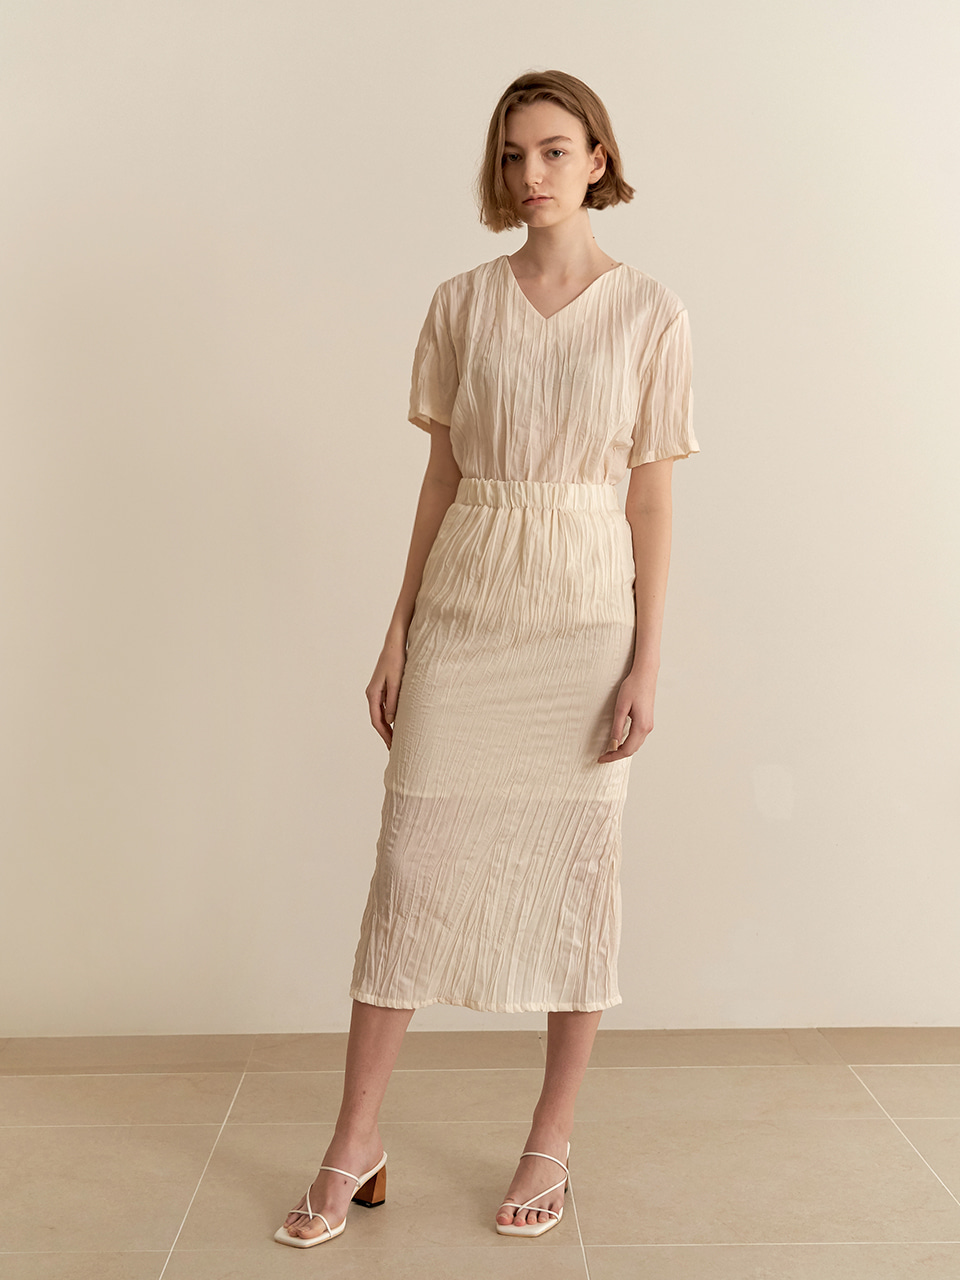 Wrinkle Slit Skirt - beige